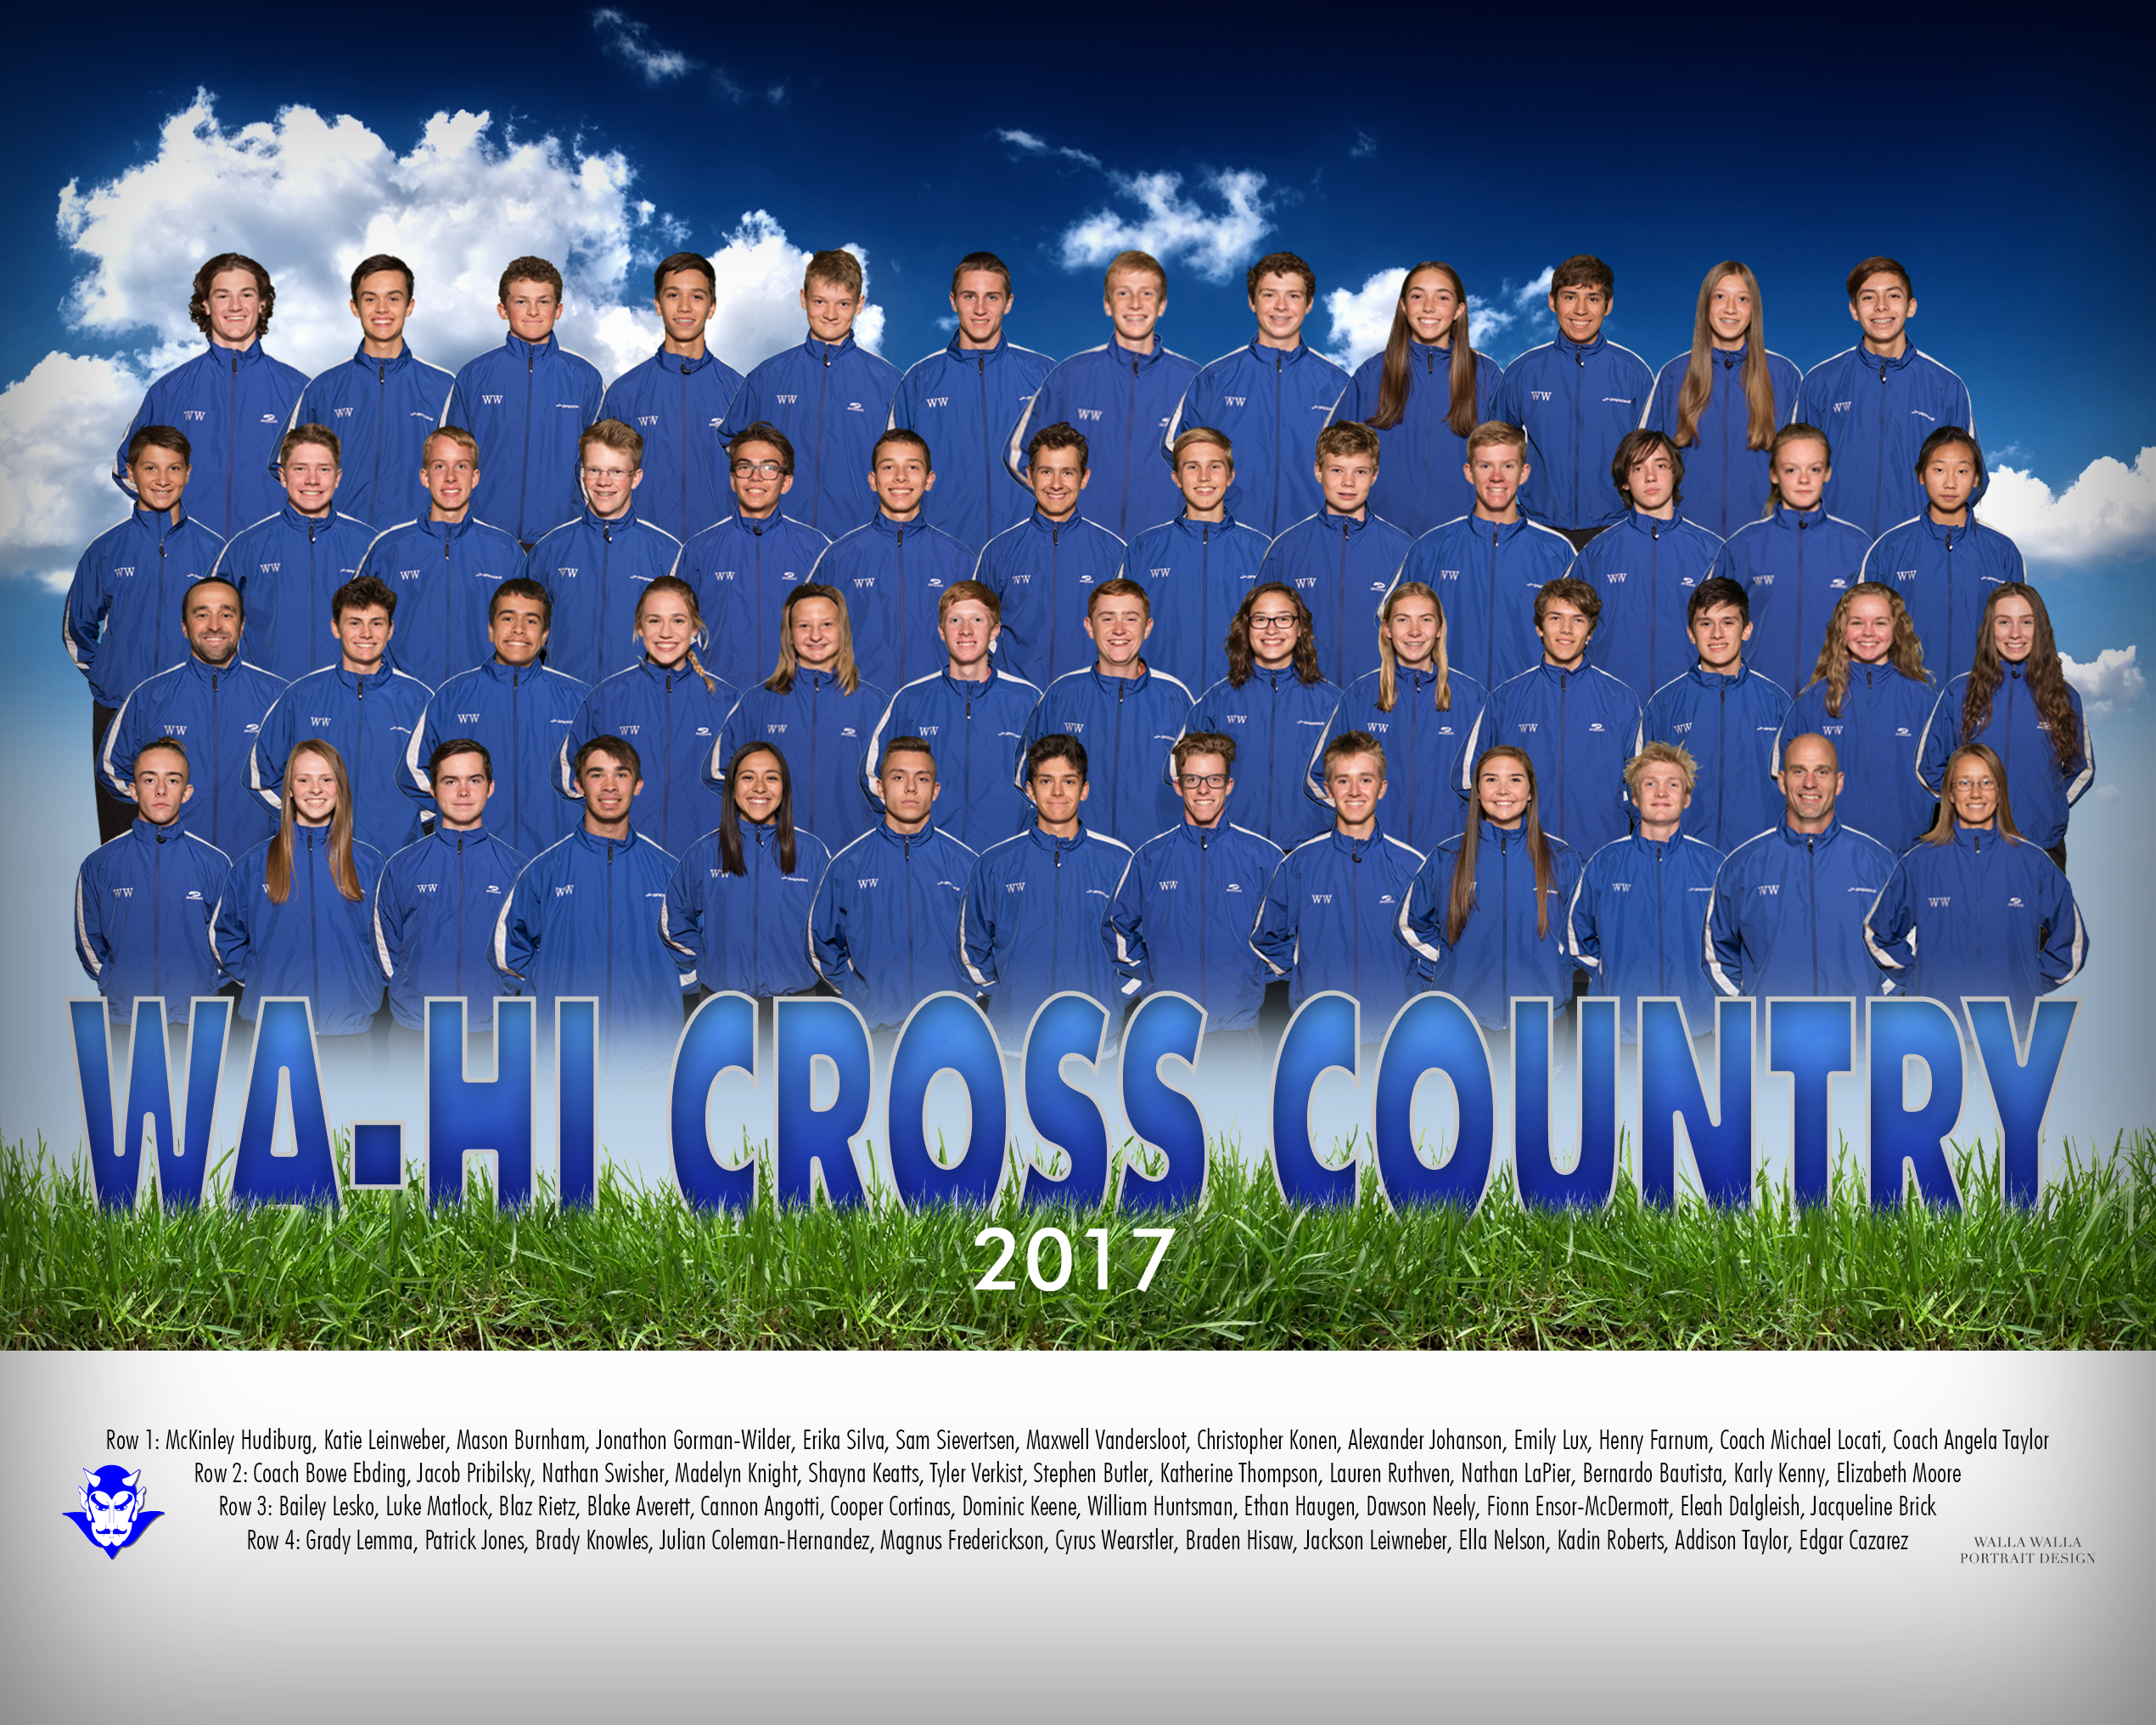 images/athletics/Cross_Country/2017_XC_Team.jpg